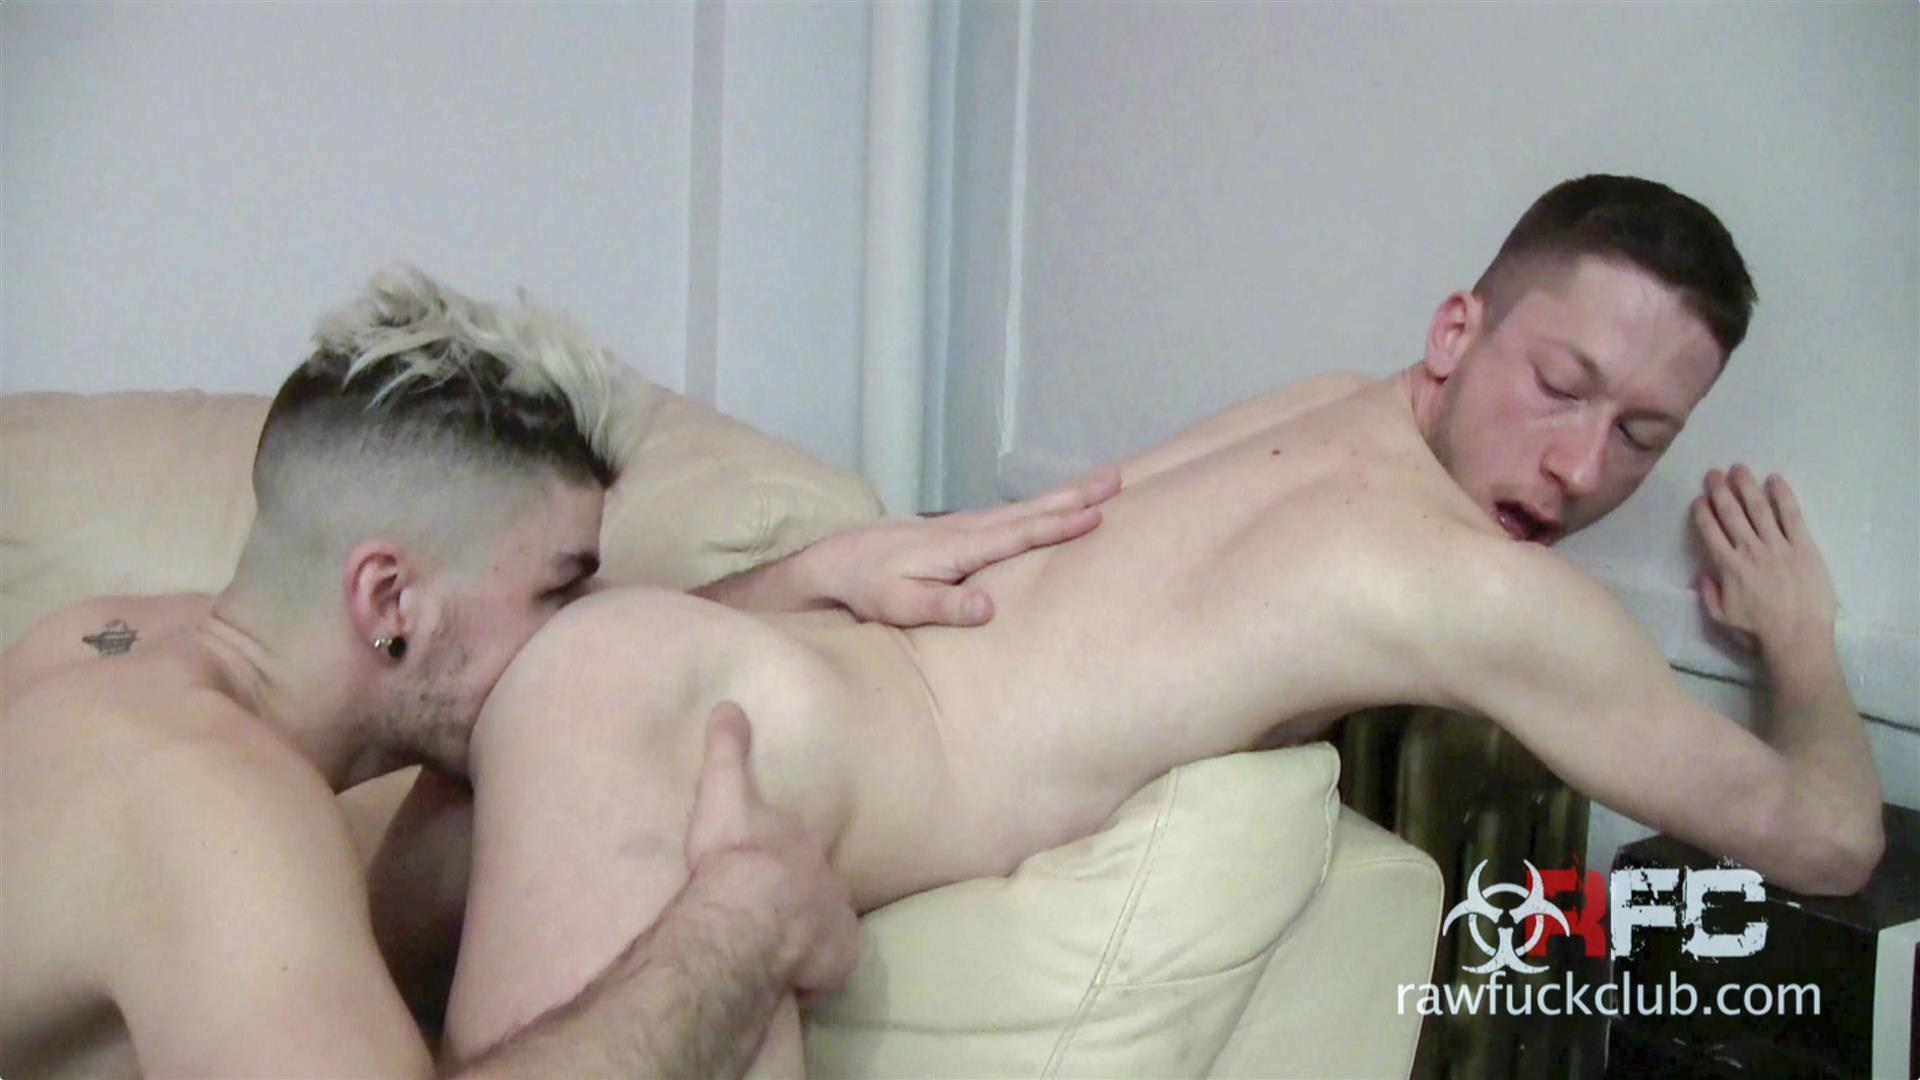 Raw Fuck Club Luke Harding and Vincent Rush Big Cock Guys Barebacking Amateur Gay Porn 07 Male Stripper Luke Harding Barebacking A Stranger